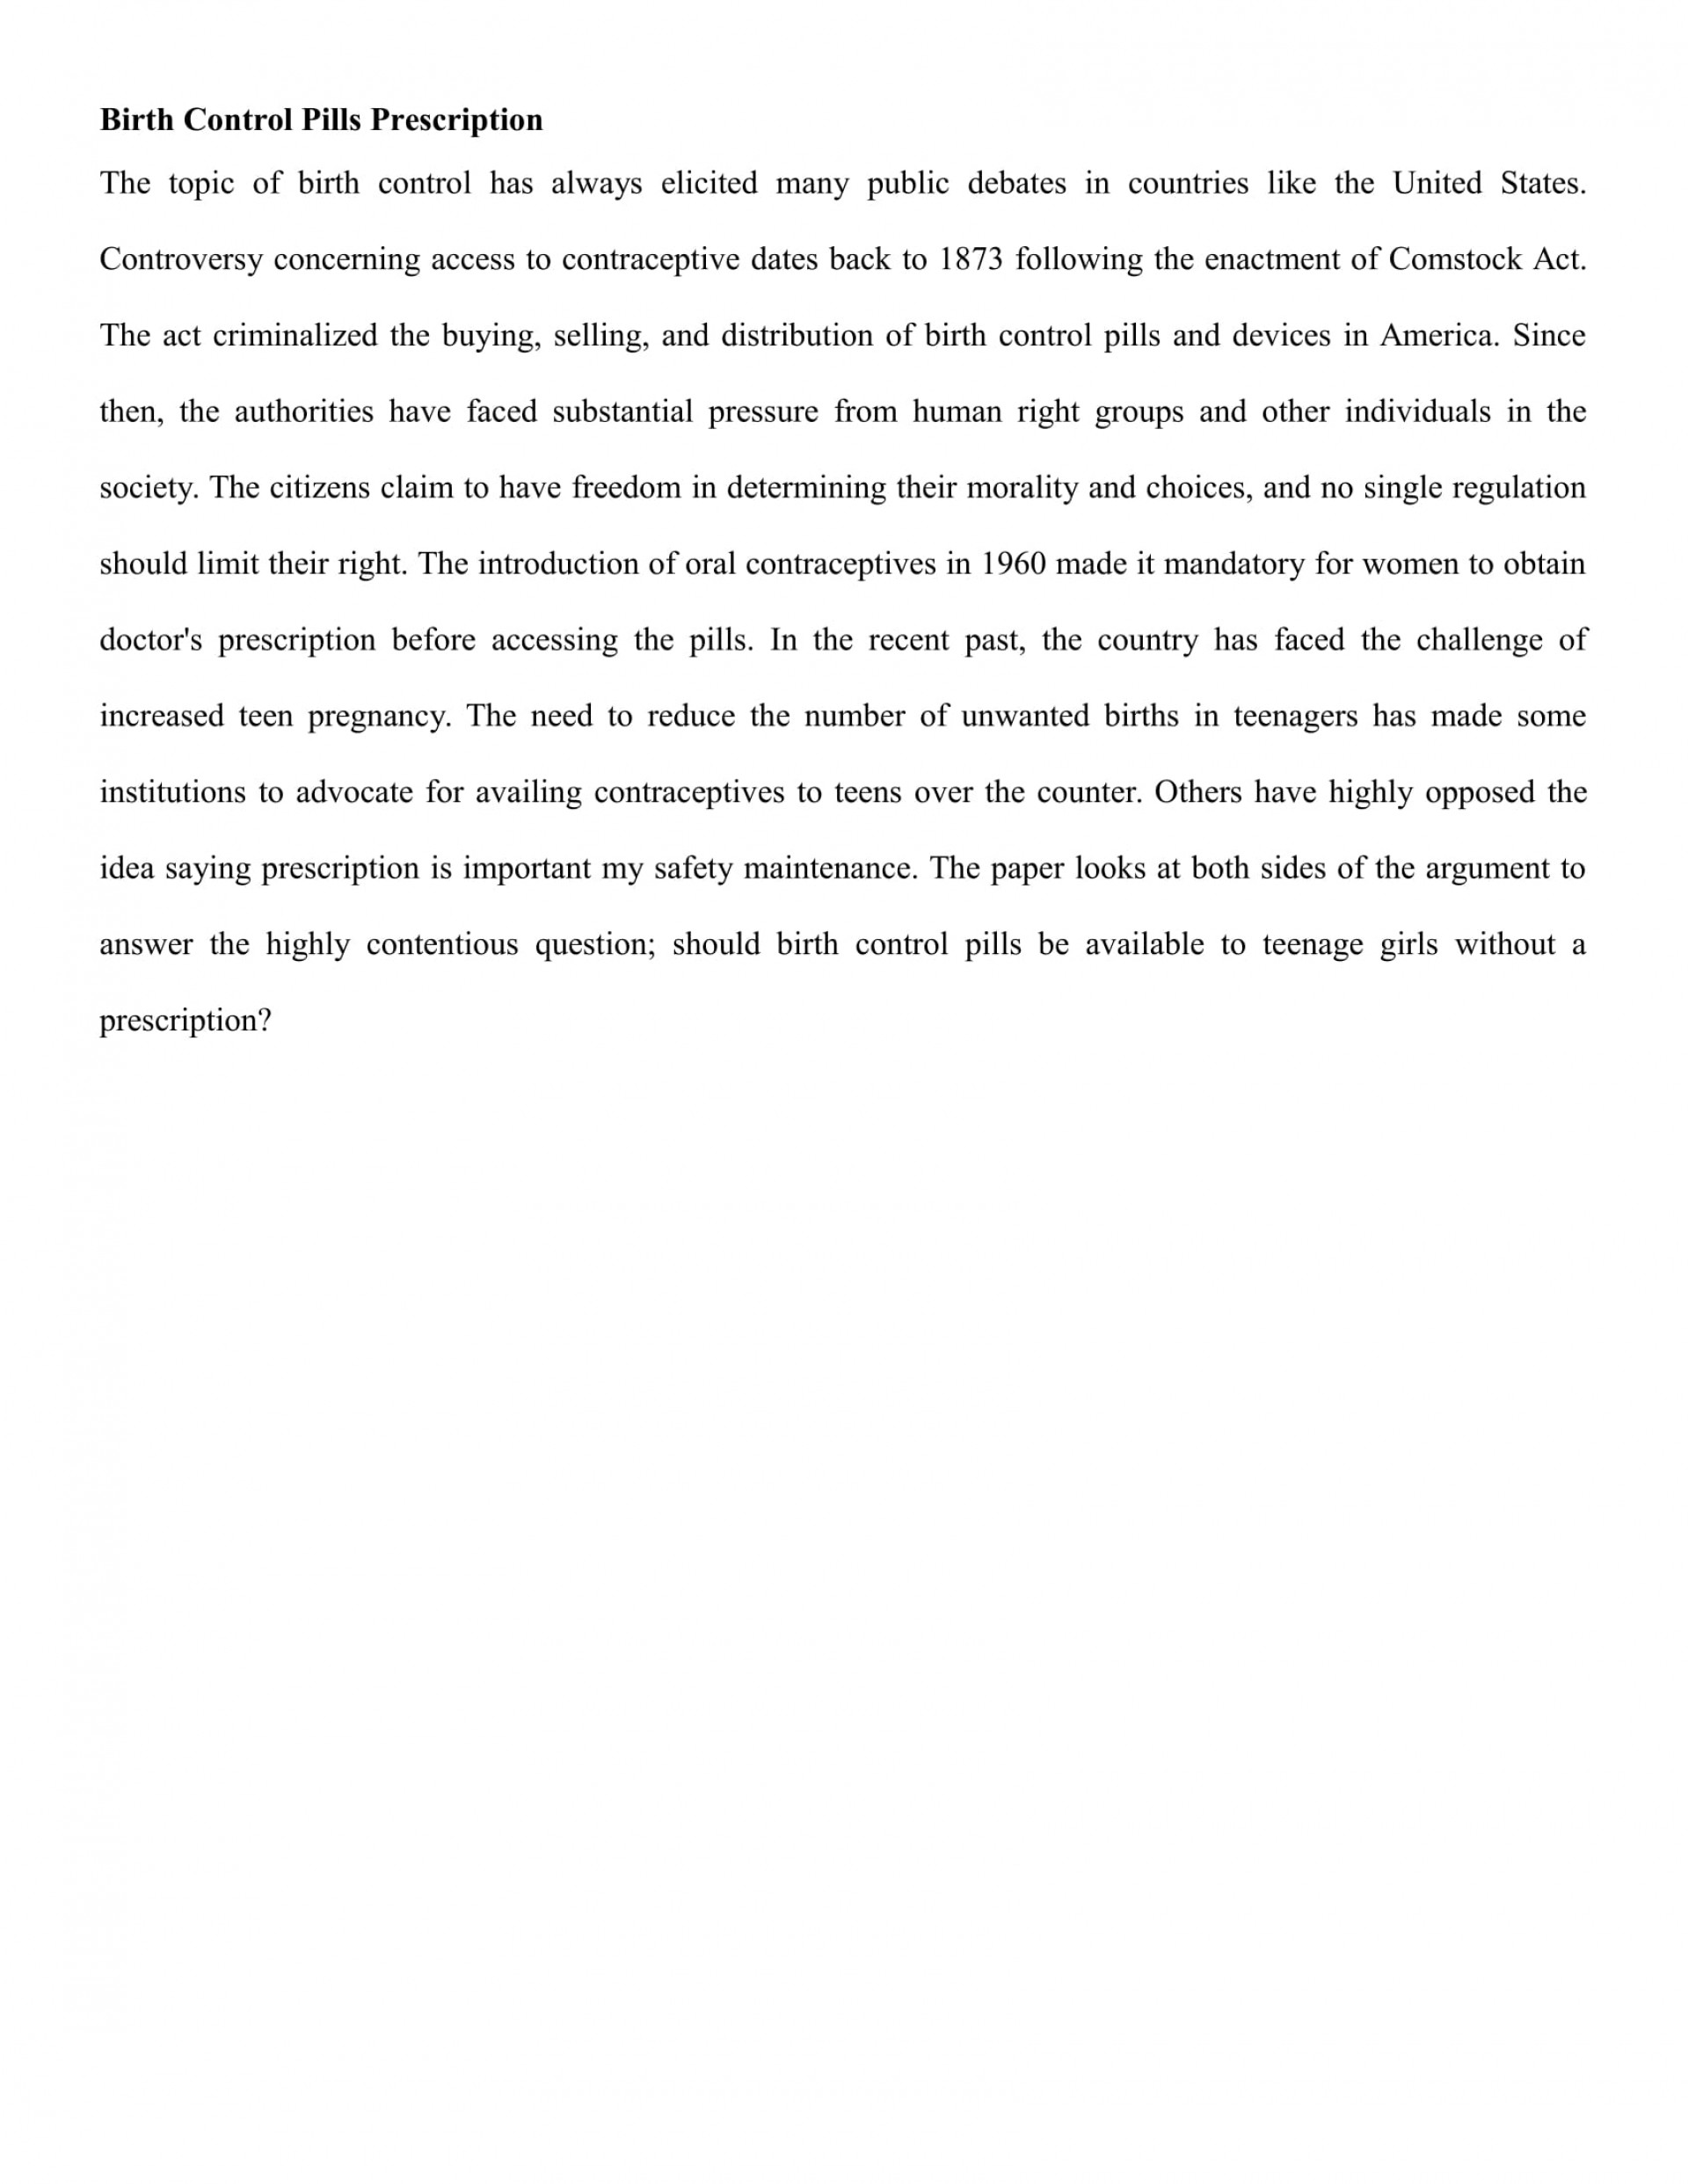 005 Essay Example Pregnancy Conclusion An On Teenage Birth Control Rights Term Paper Academic Service Argumentative About Pills Prescript In The Philippines Shocking How To Prevent 1920